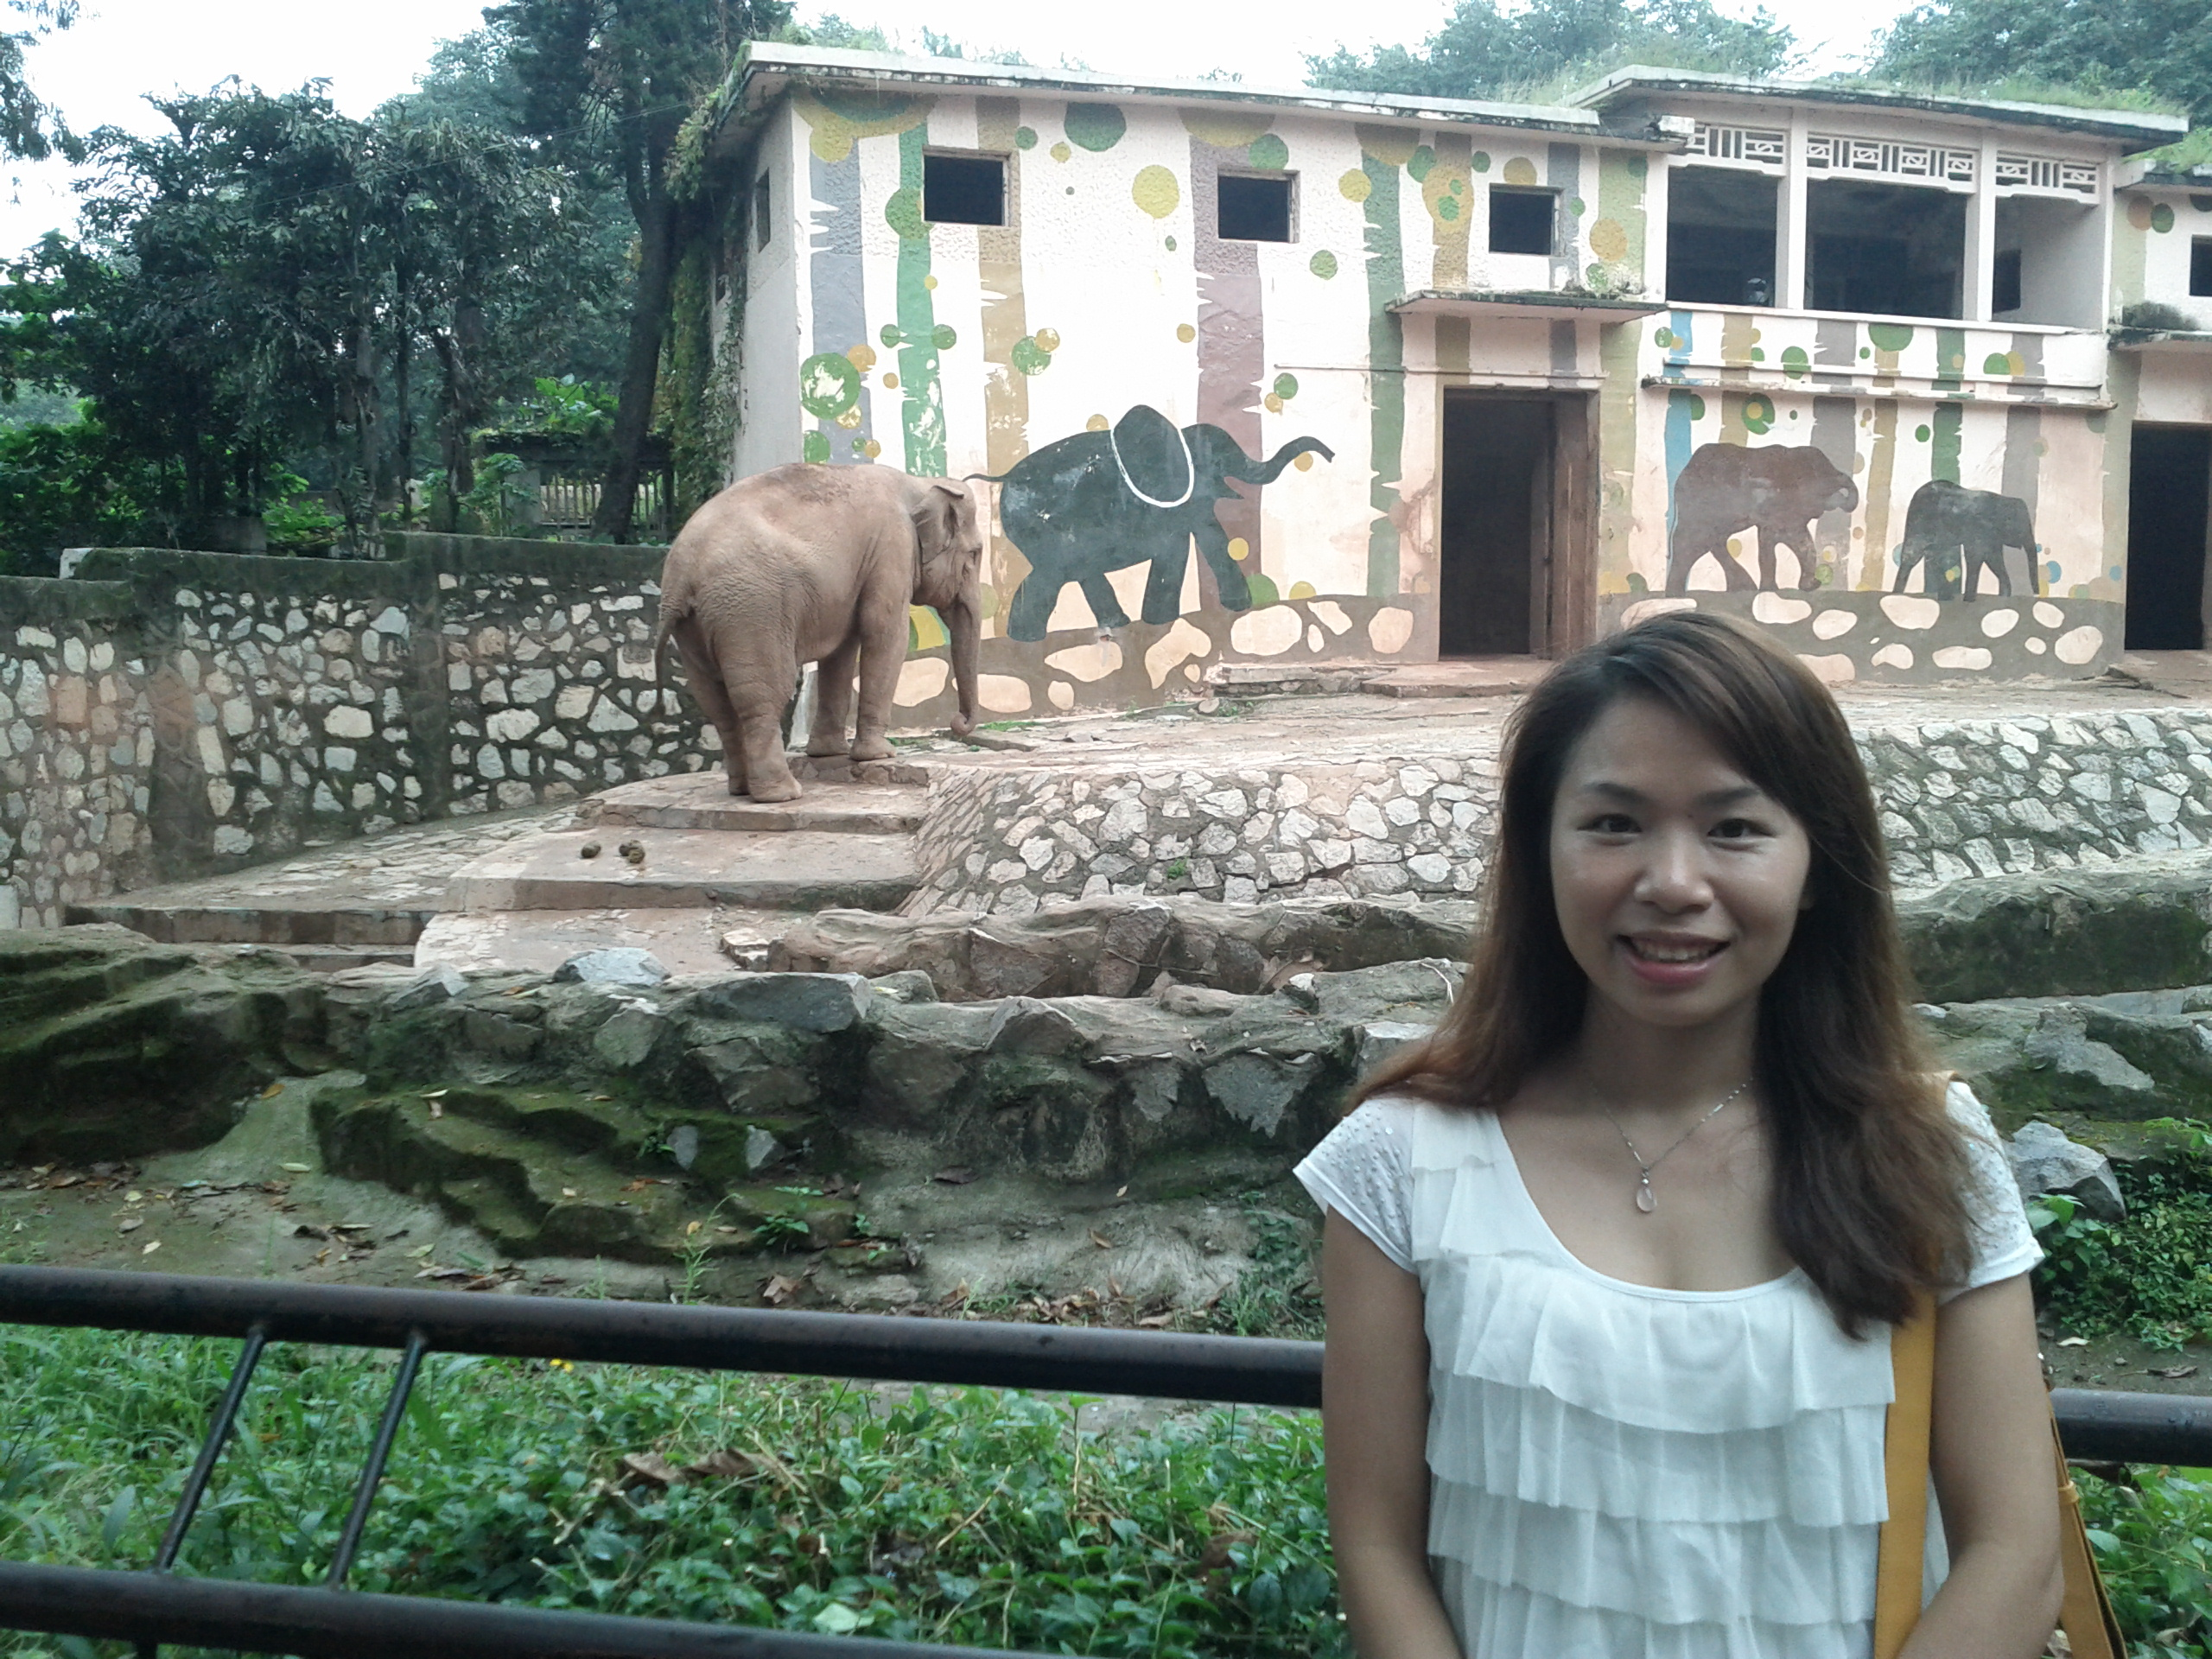 Yoyo with an elephant at Guangzhou zoo